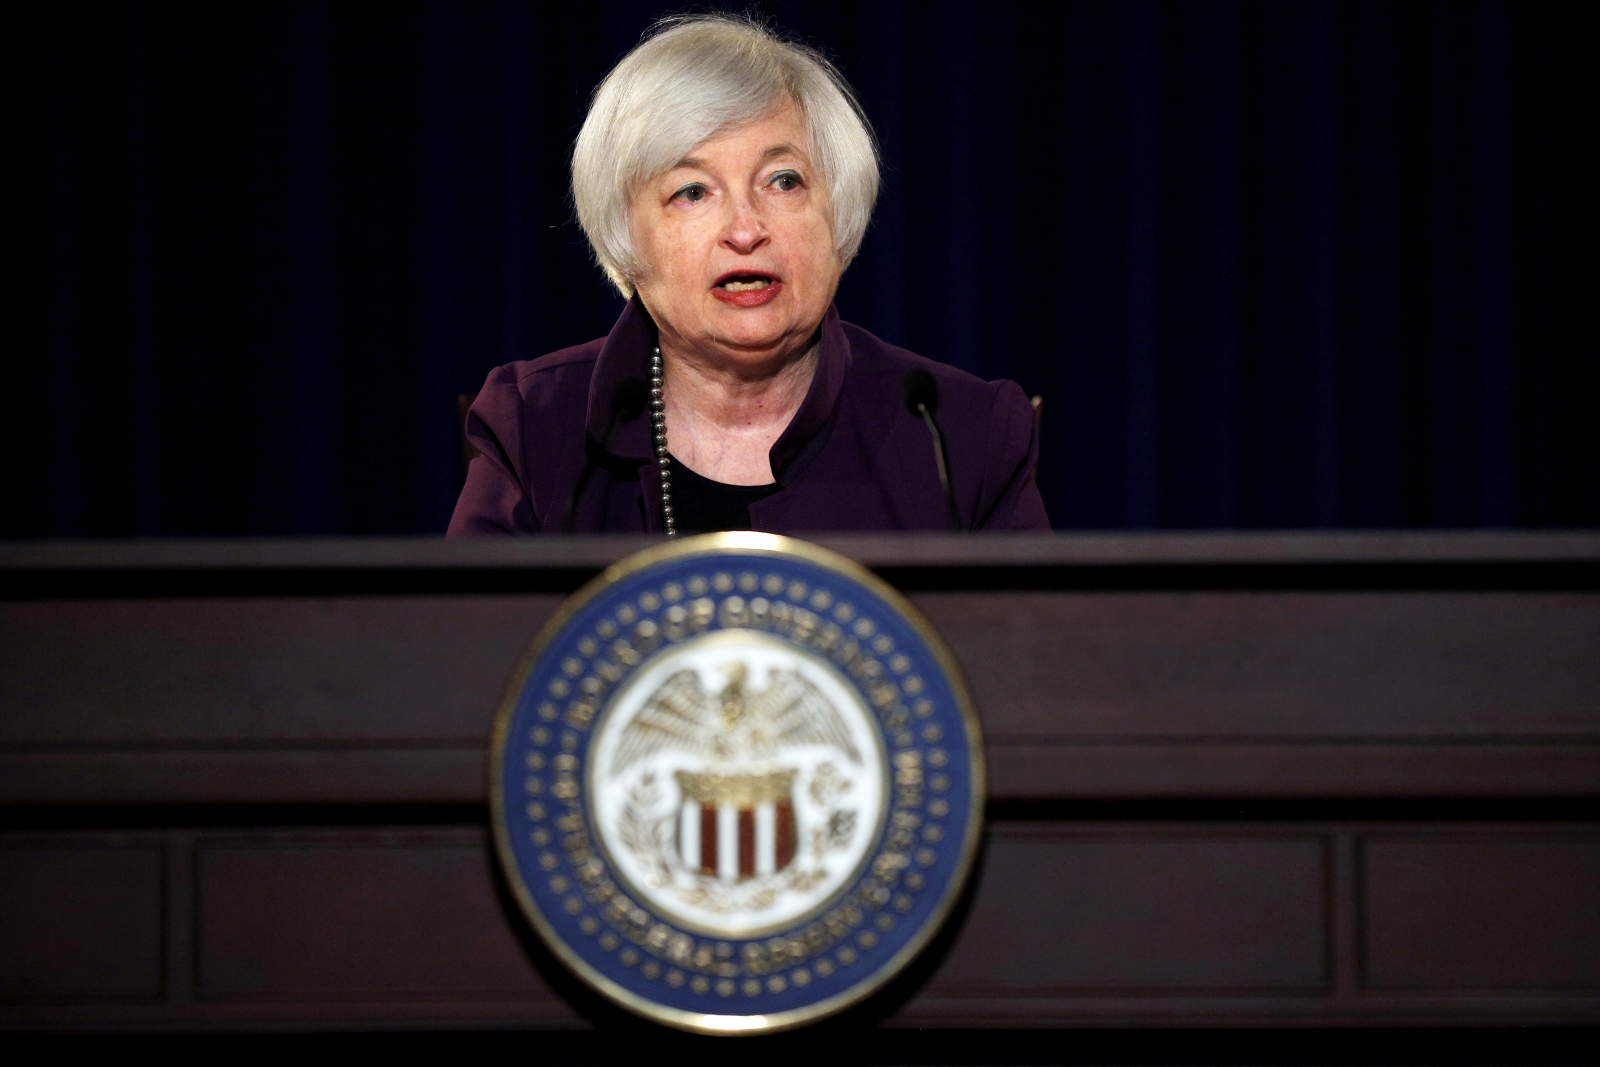 US Fed Chair Janet Yellen says the case for increasing rates has 'strengthened 'in recent months'